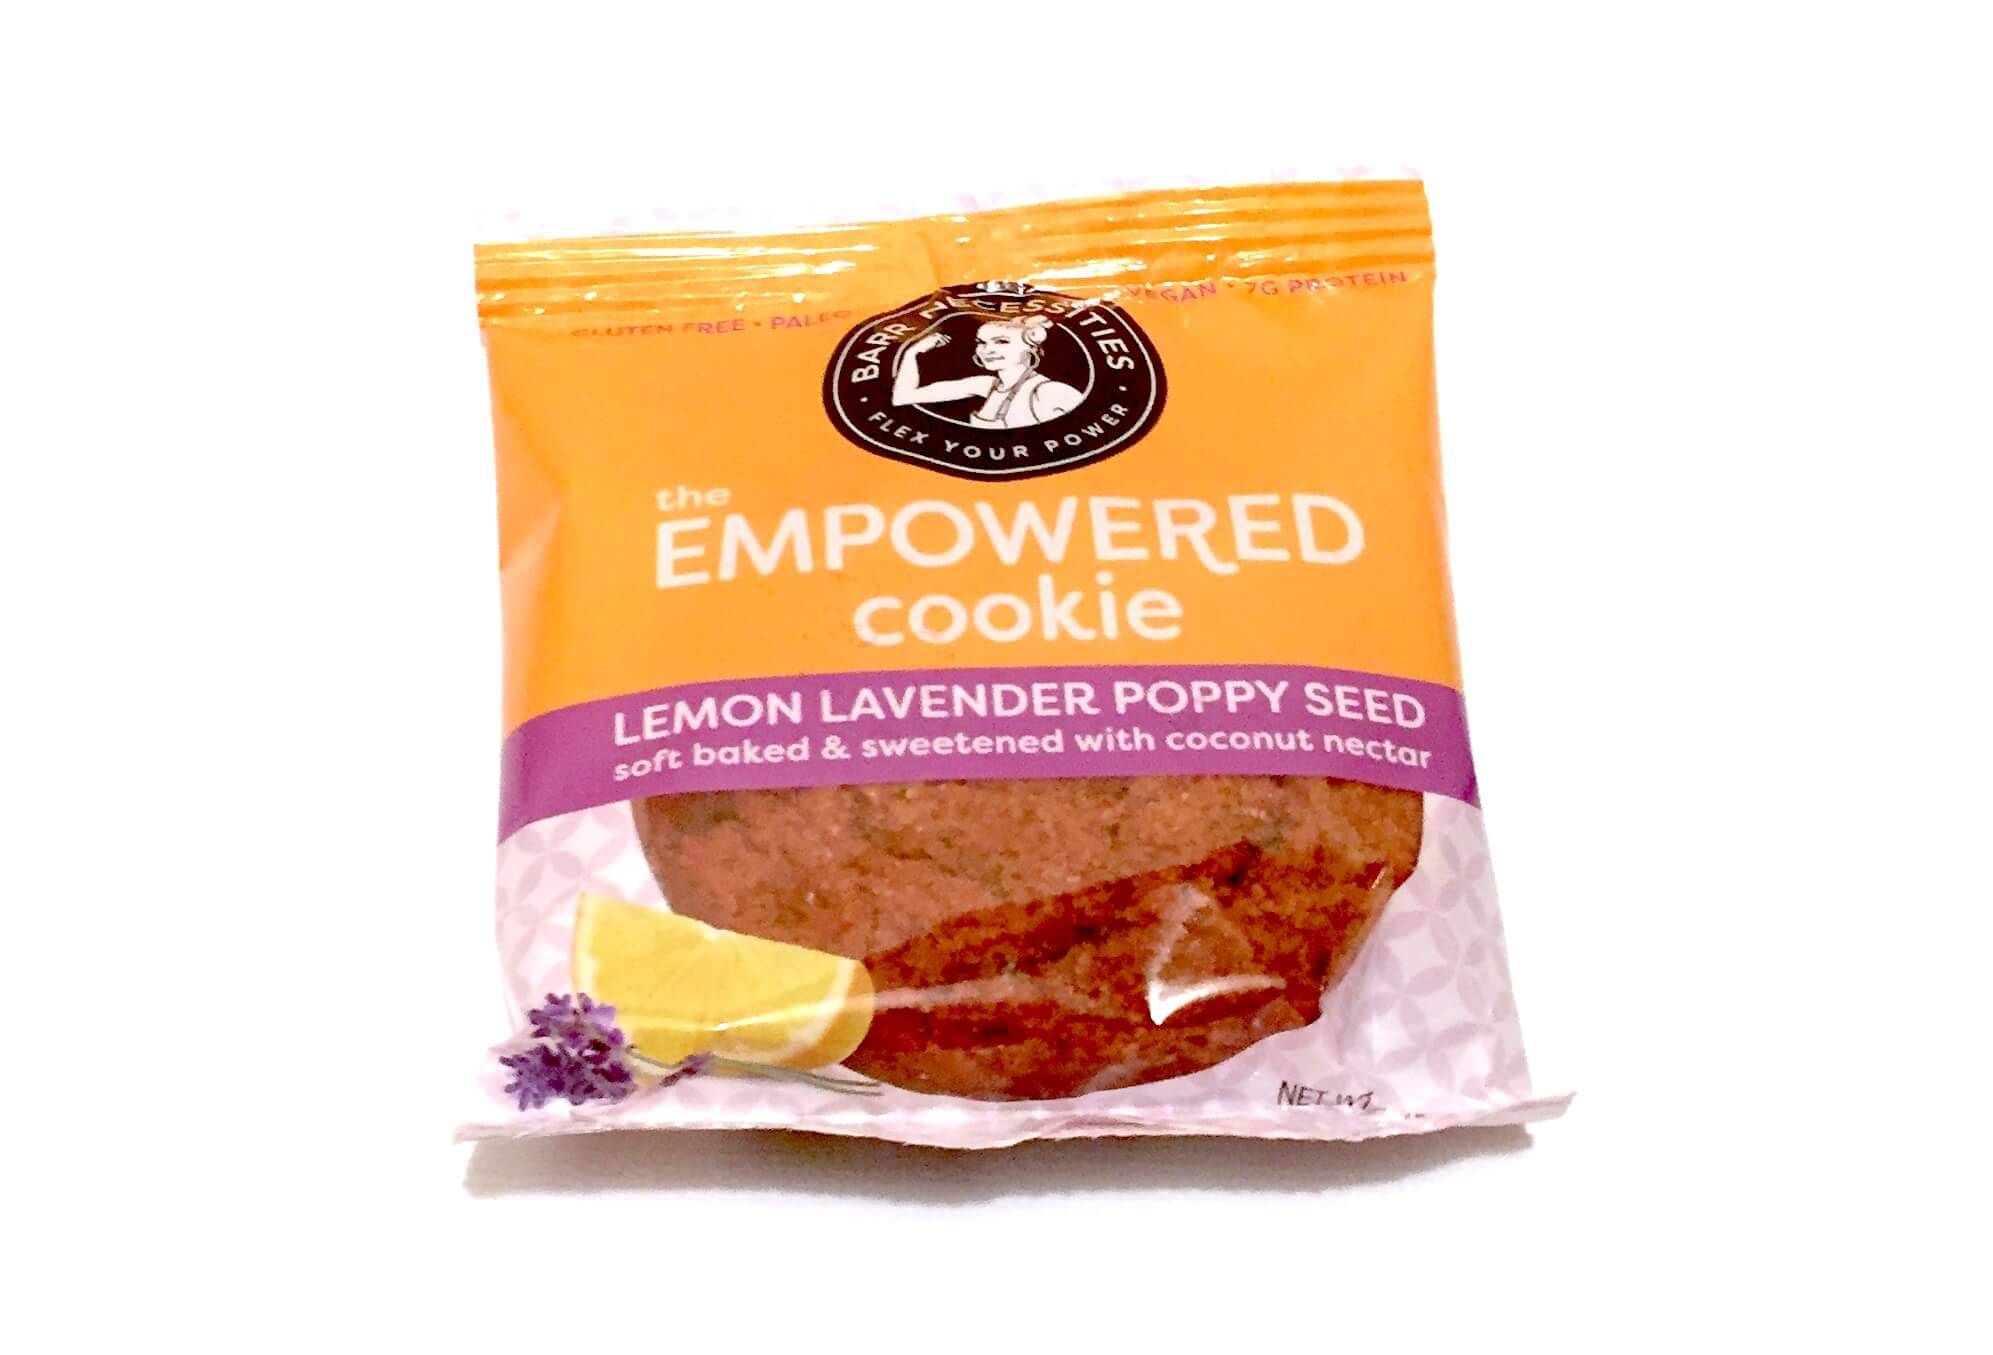 the-empowered-cookie-lemon-lavender-poppy-seed-042320